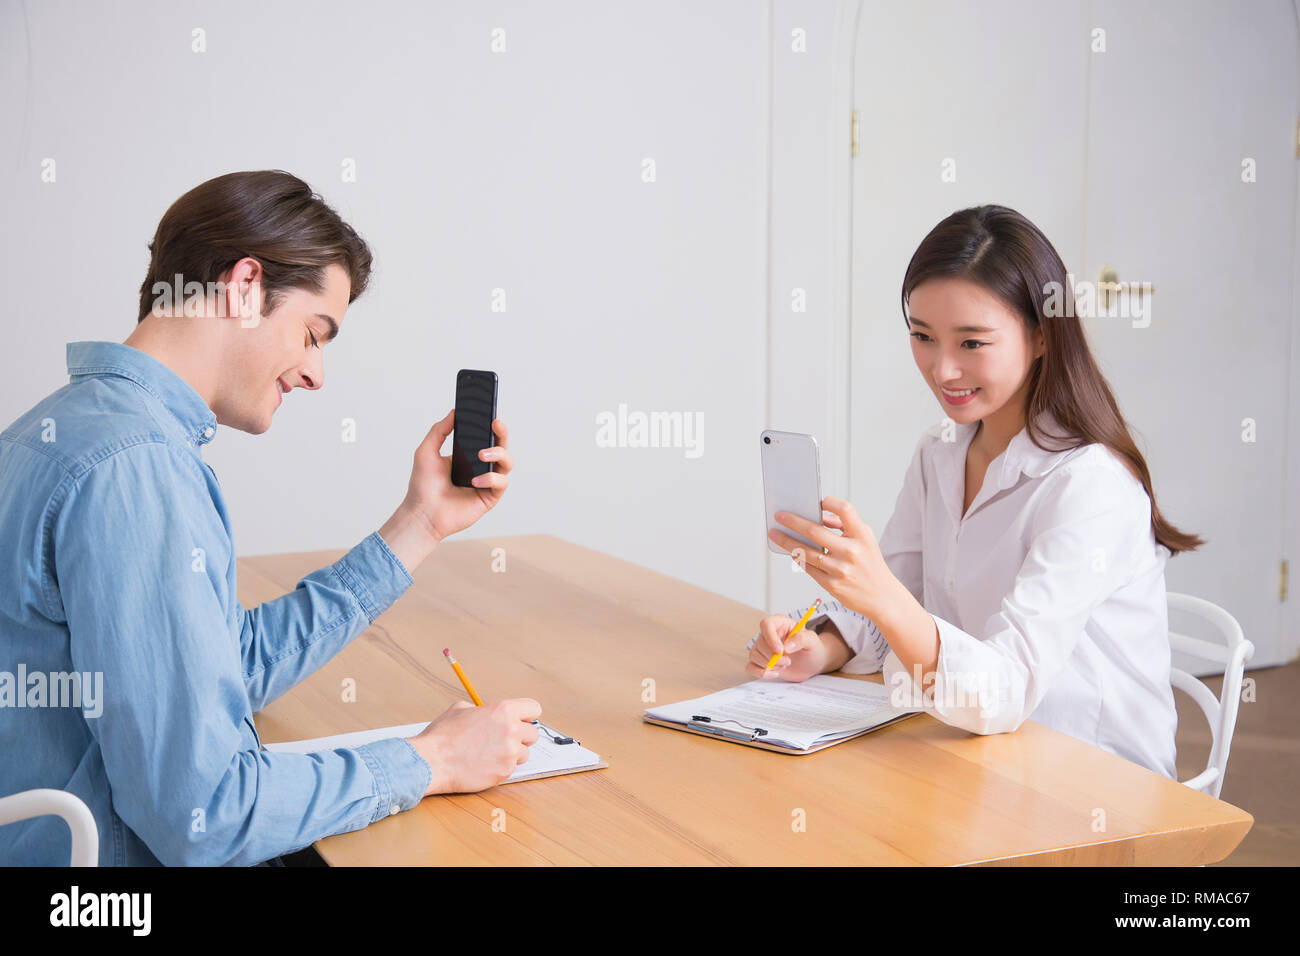 Conceptual photo study another foreign language on/off line verbal courses 053 - Stock Image